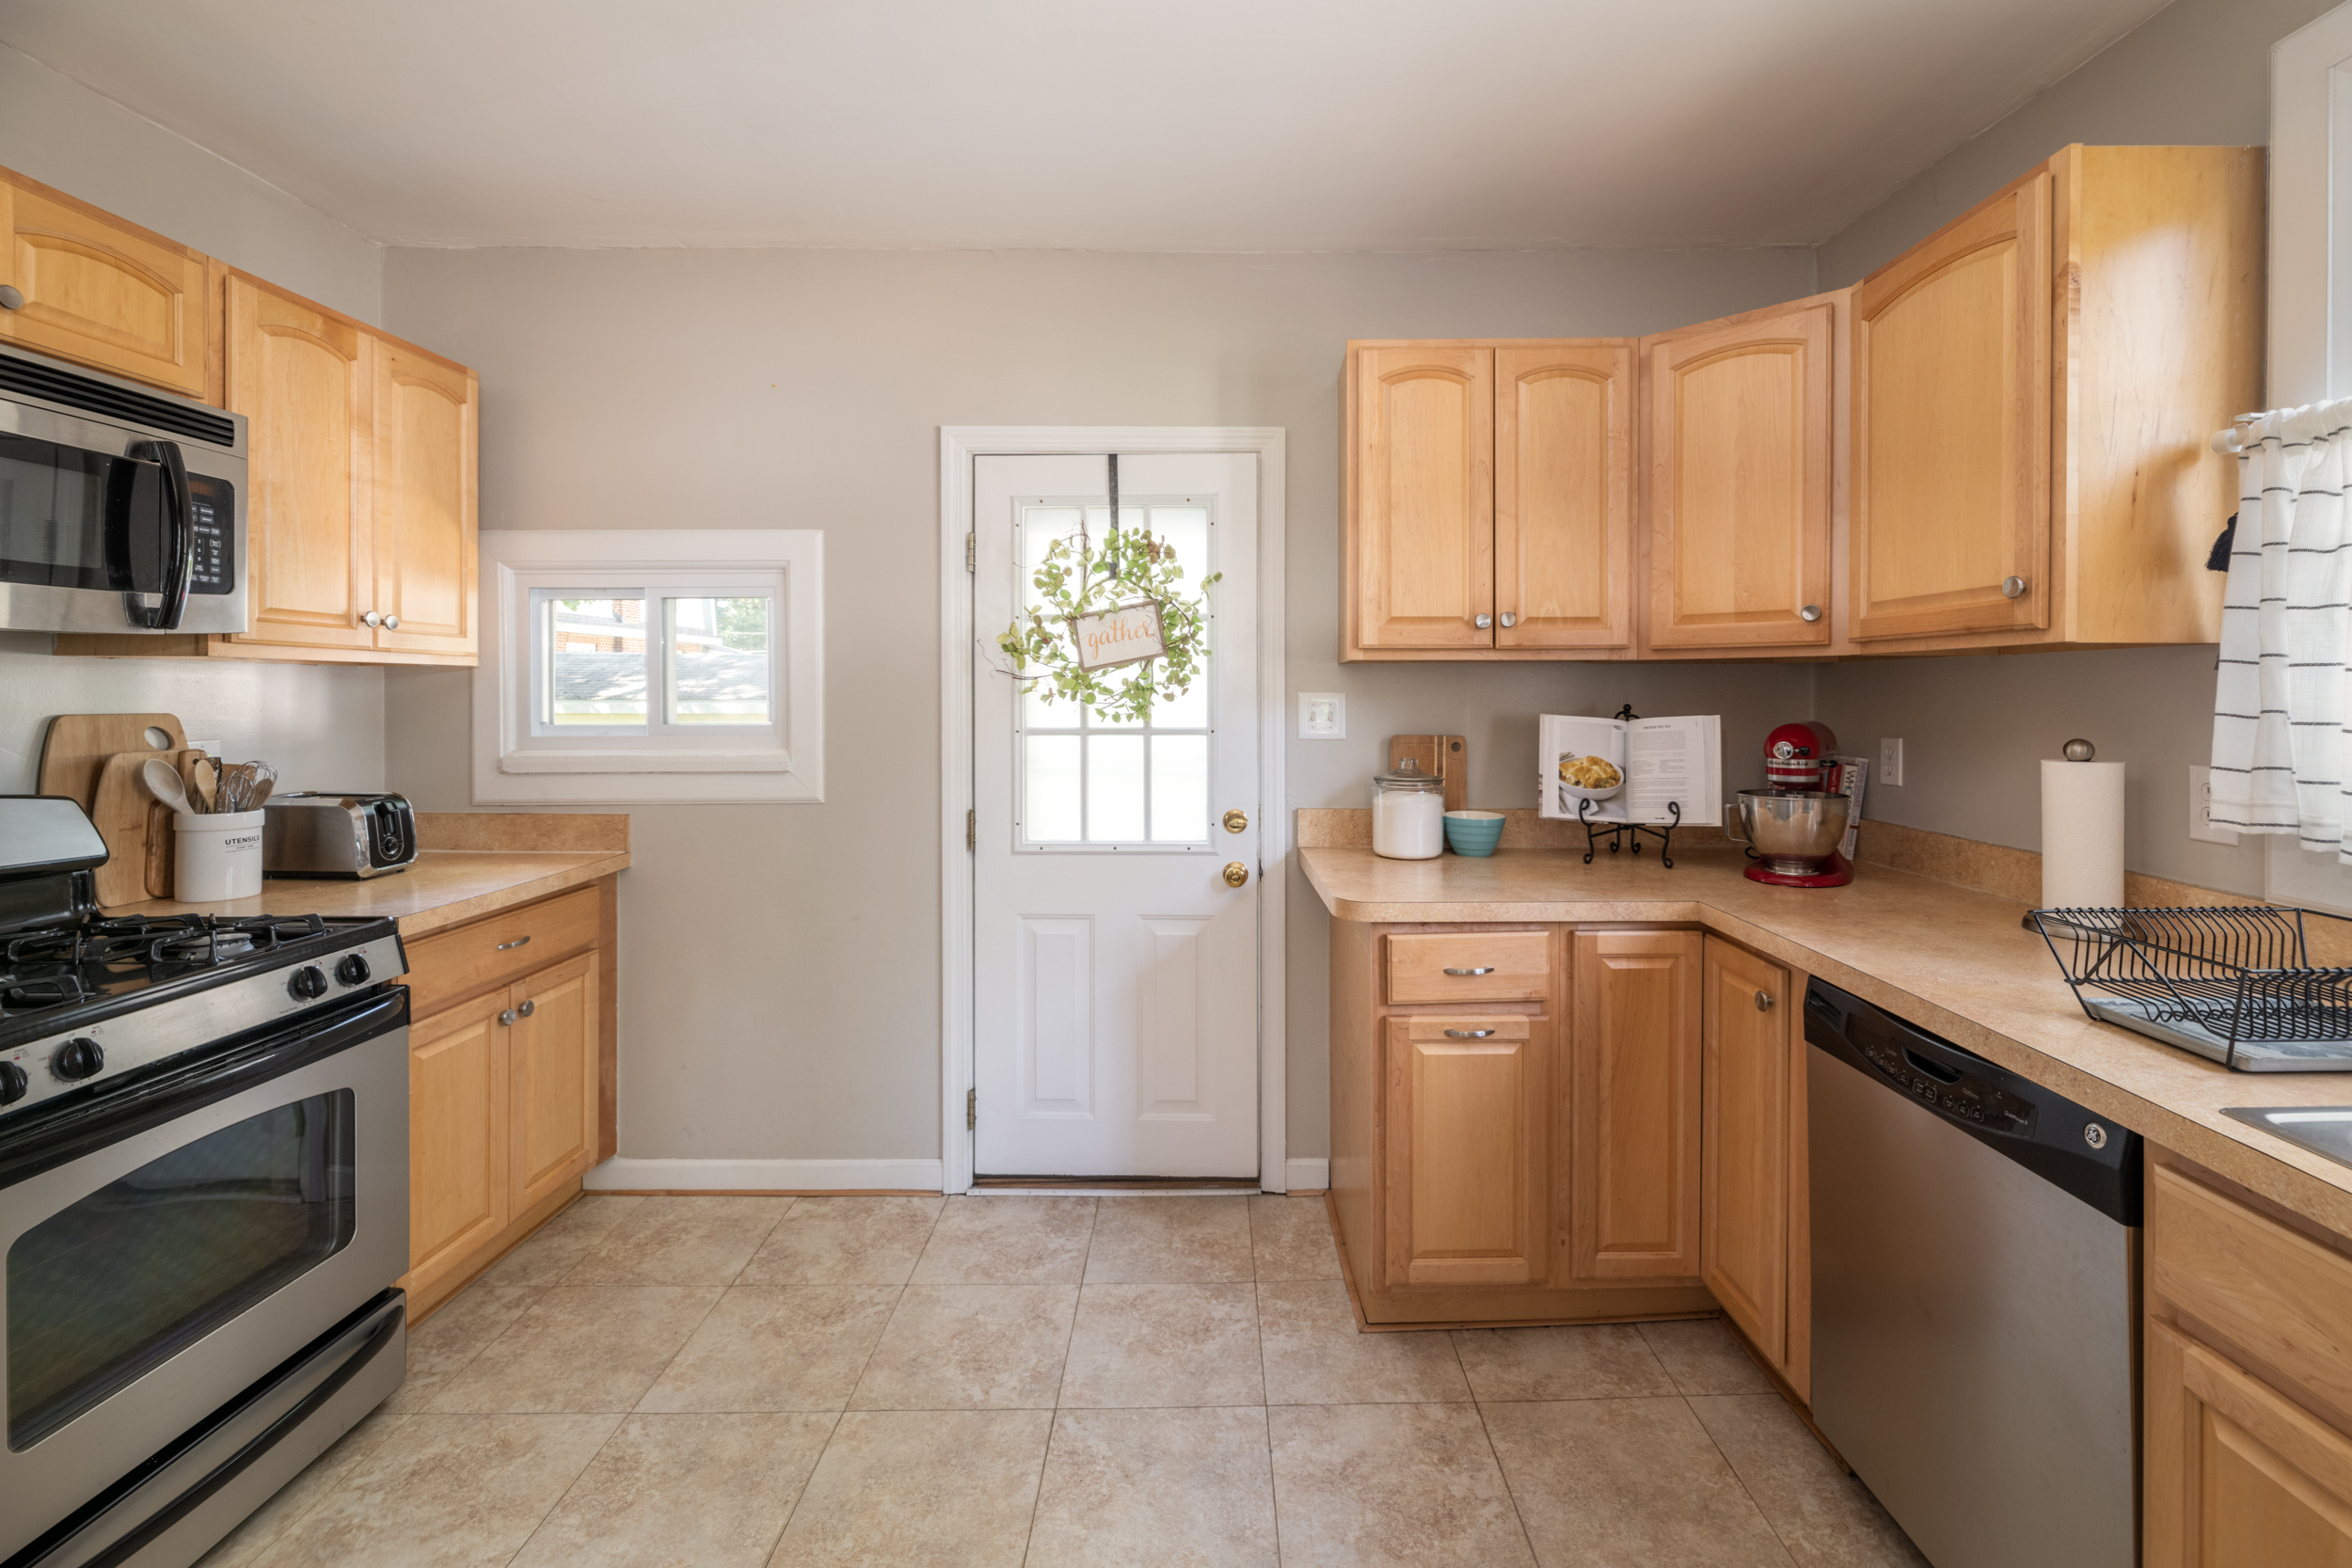 7LakeshoreDr_Kitchen_1.jpg